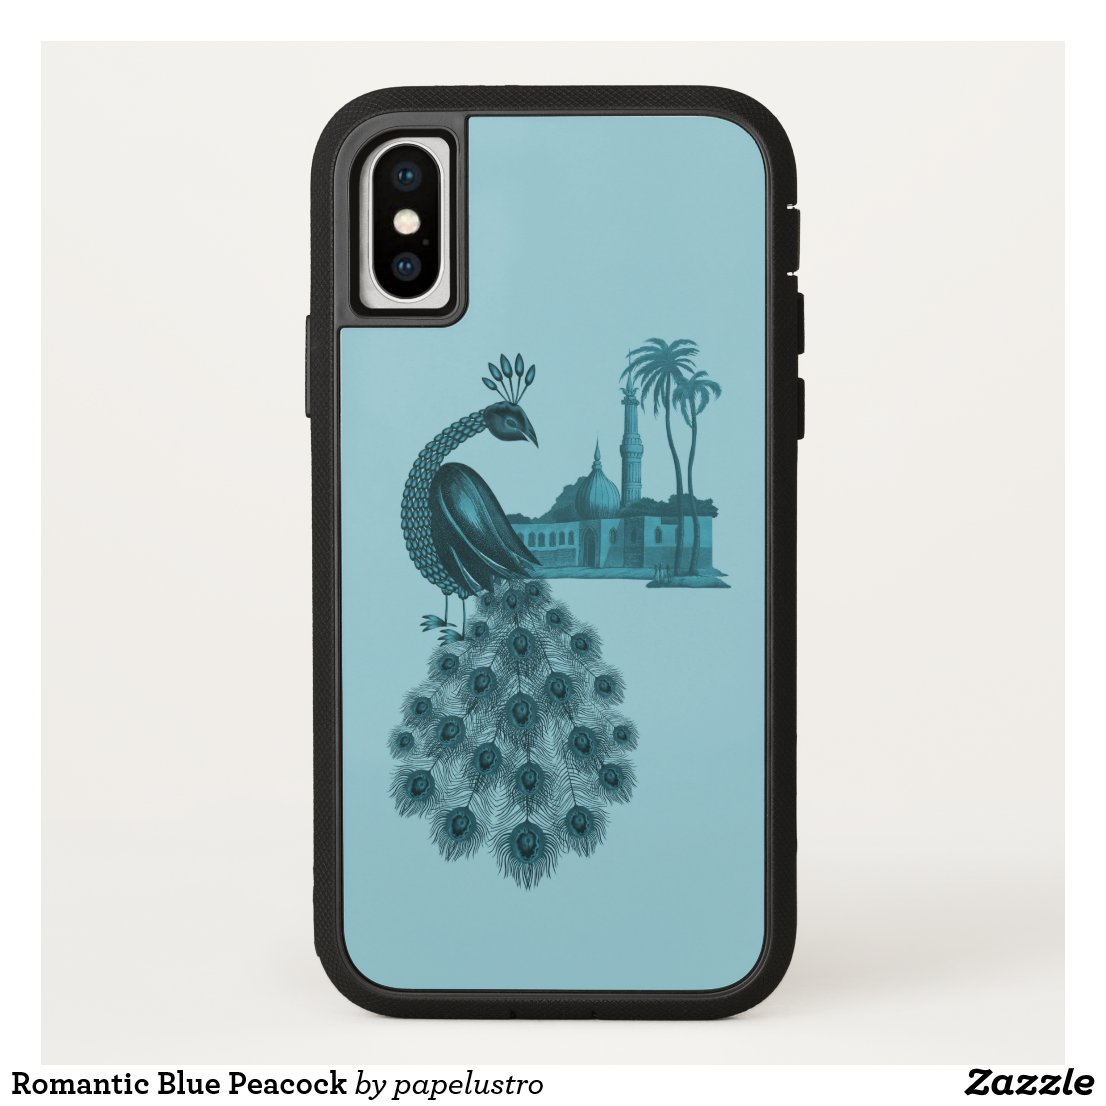 Romantic Blue Peacock iPhone X Case